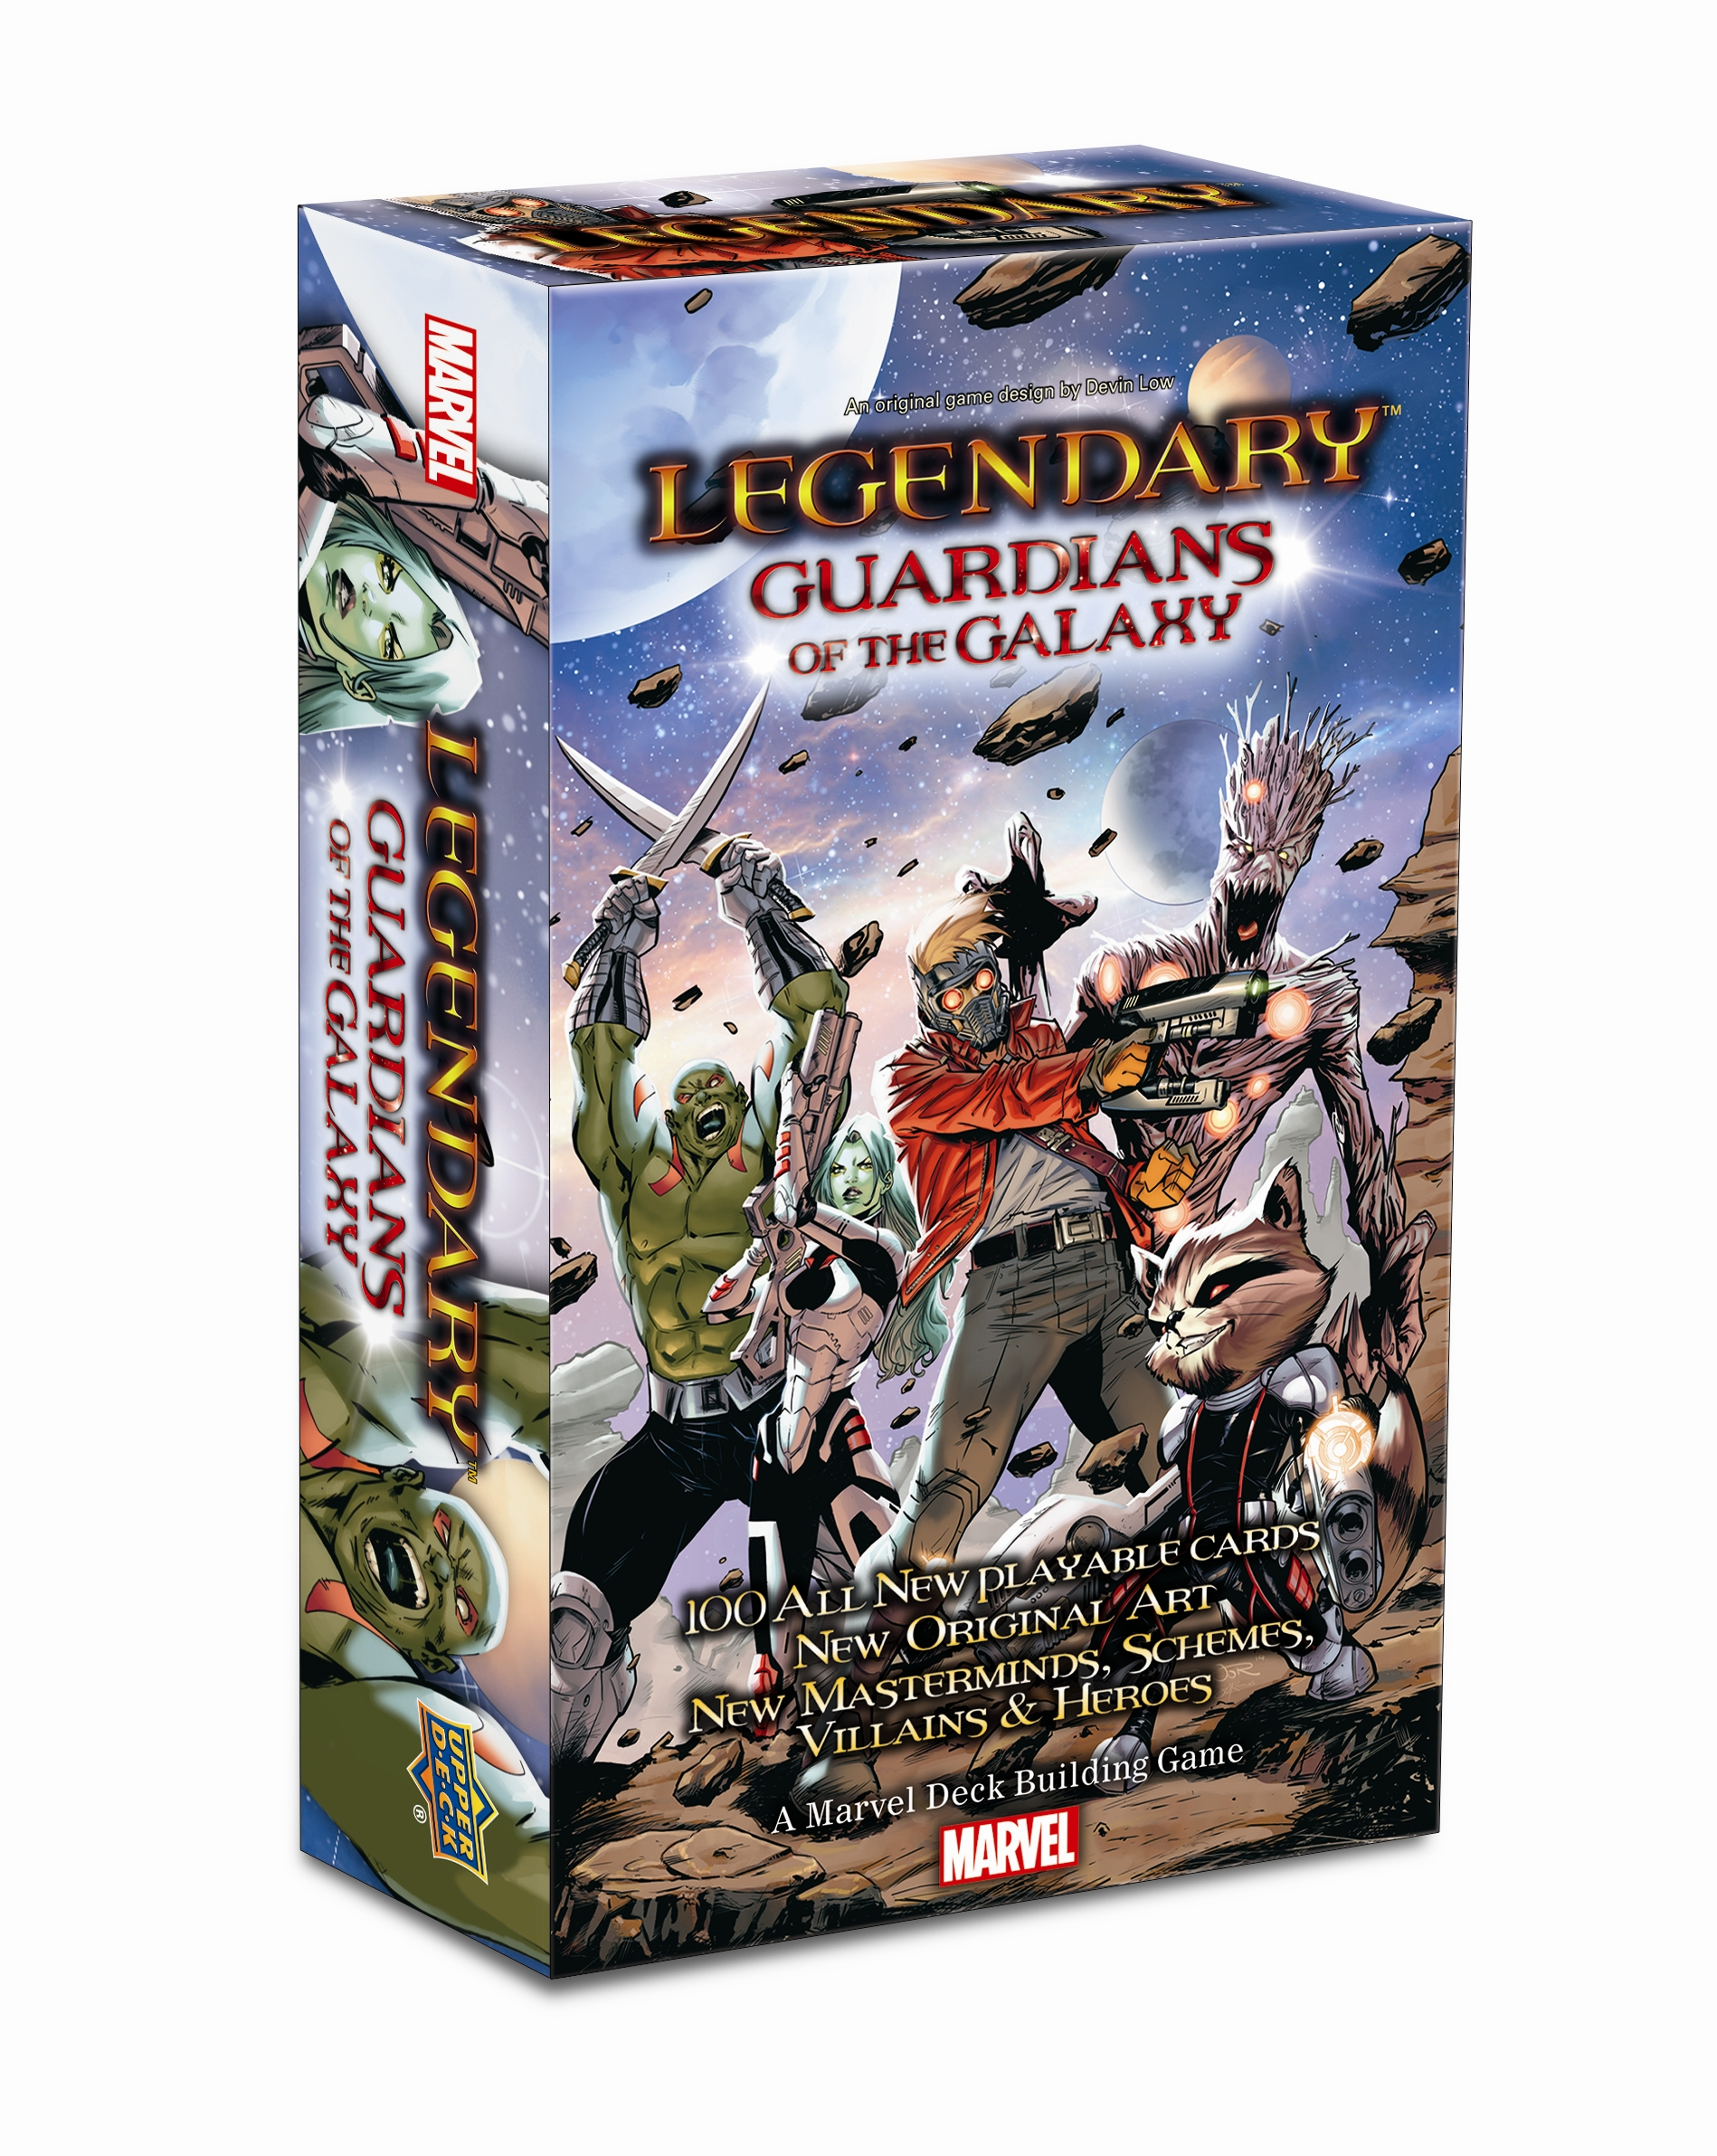 Legendary Dbg: Guardians Of The Galaxy Expansion Box Front